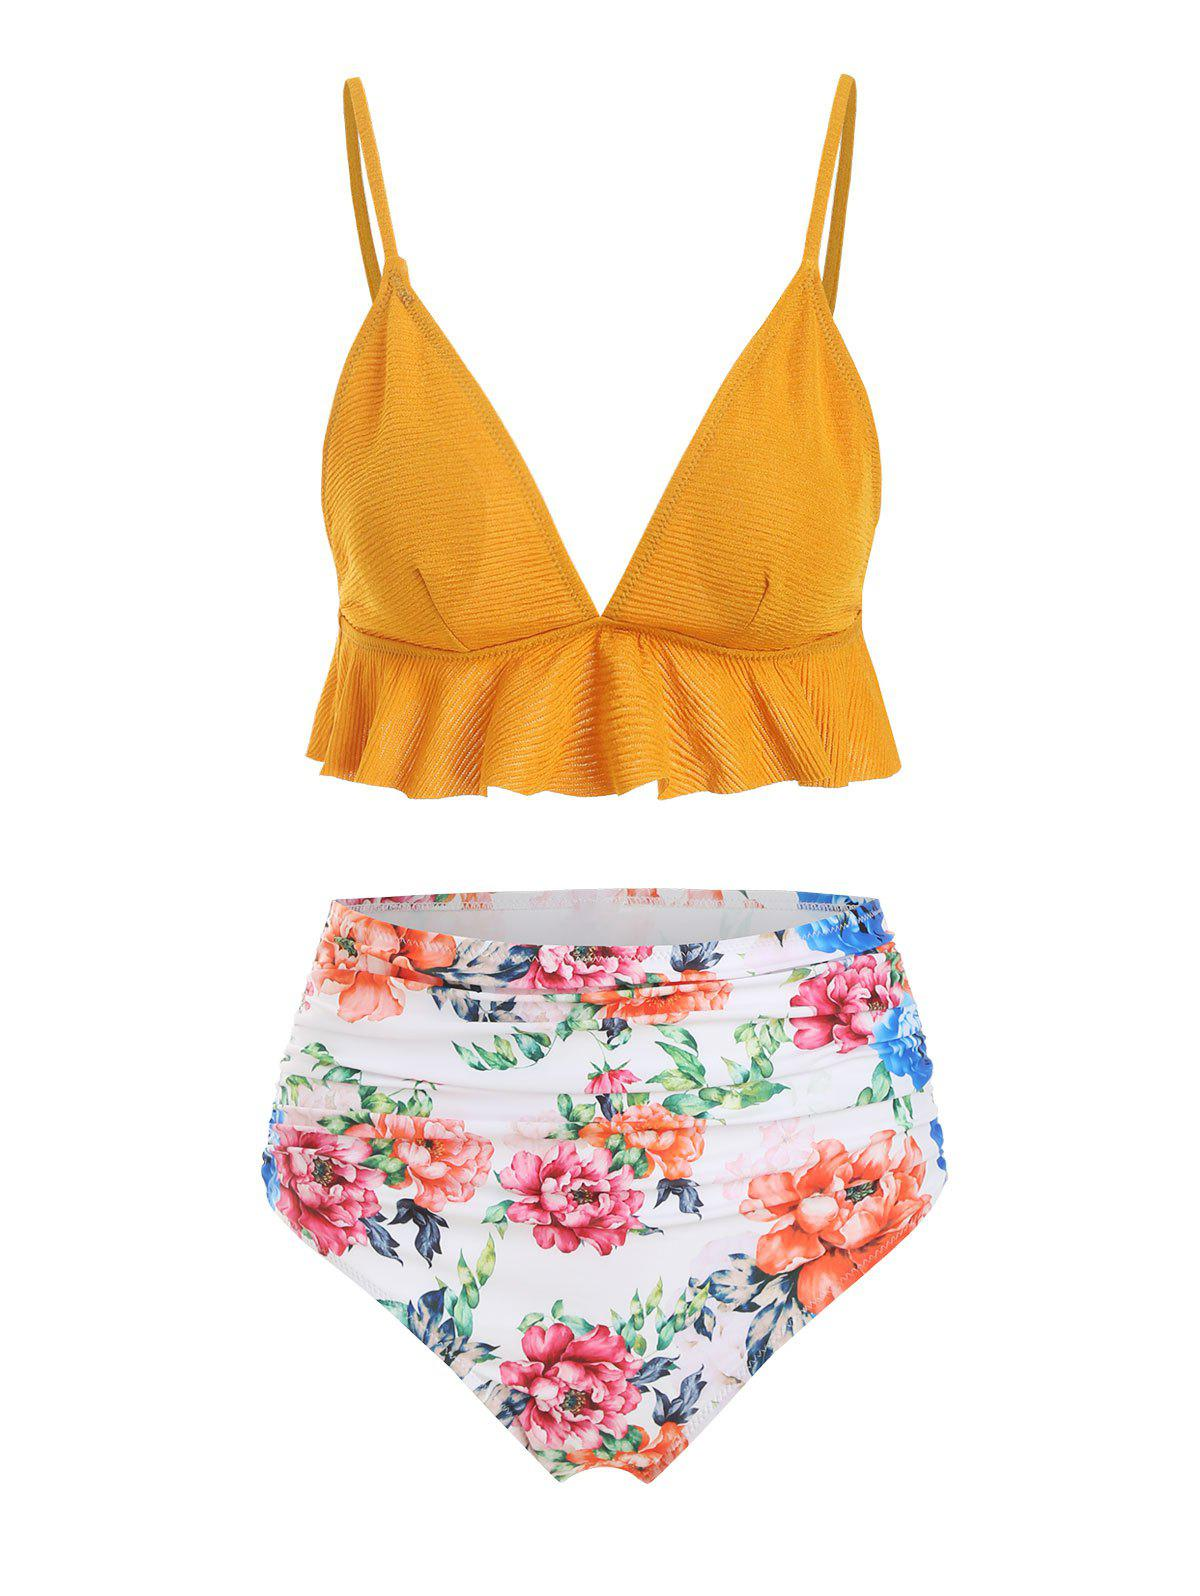 Affordable Crinkly Flounce Ruched Floral High Waisted Bikini Swimsuit